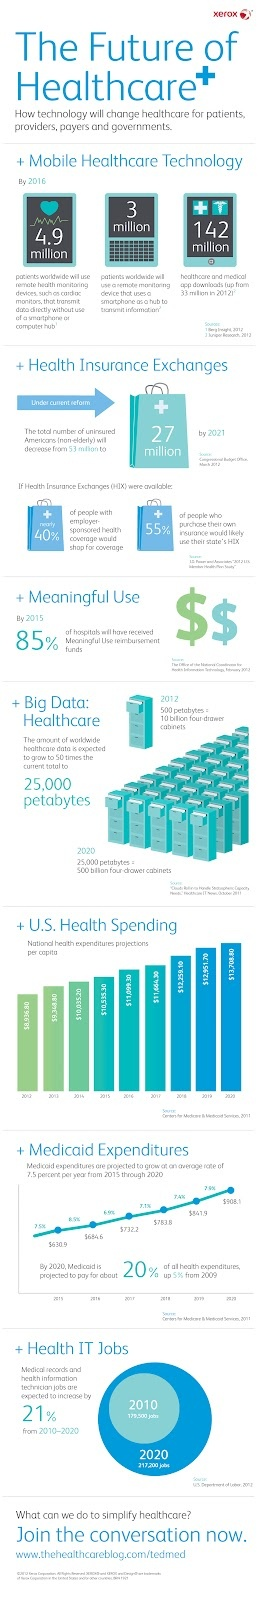 The Future of Healthcare   How technology will change healthcare for patients, providers, payers and governments.